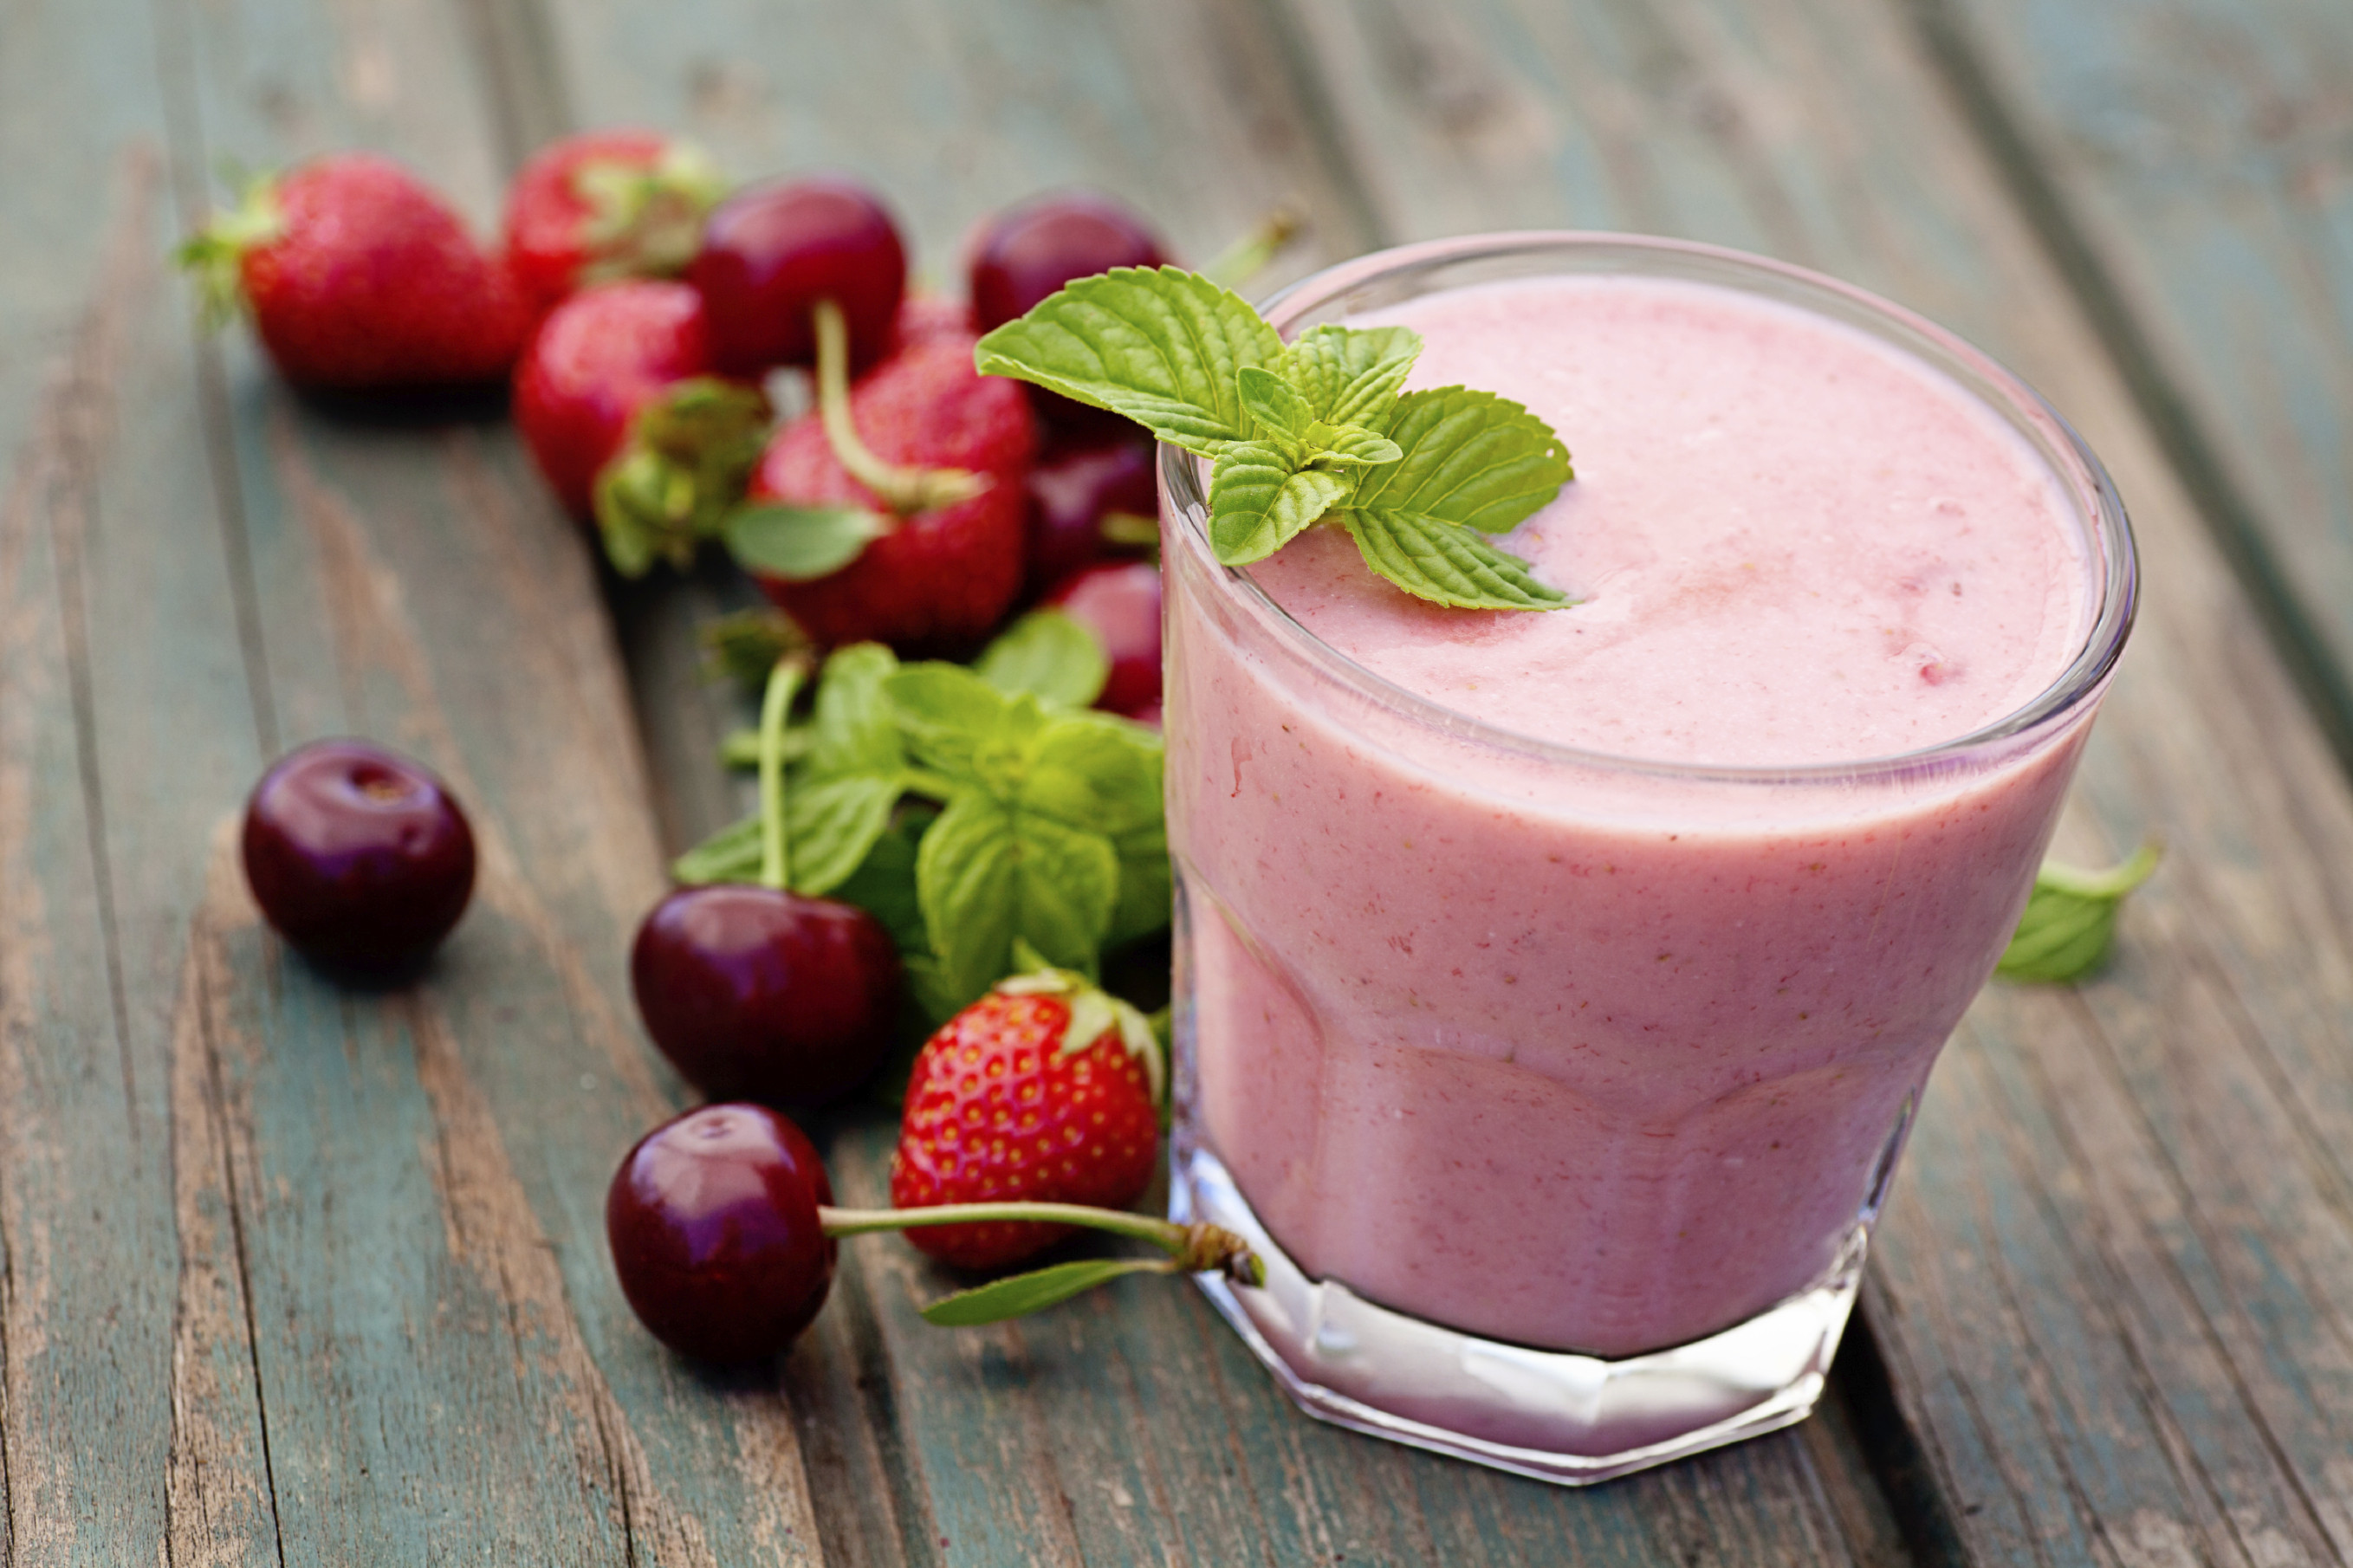 Healthy Smoothies To Make  The BEST Frozen Fruit for Smoothies